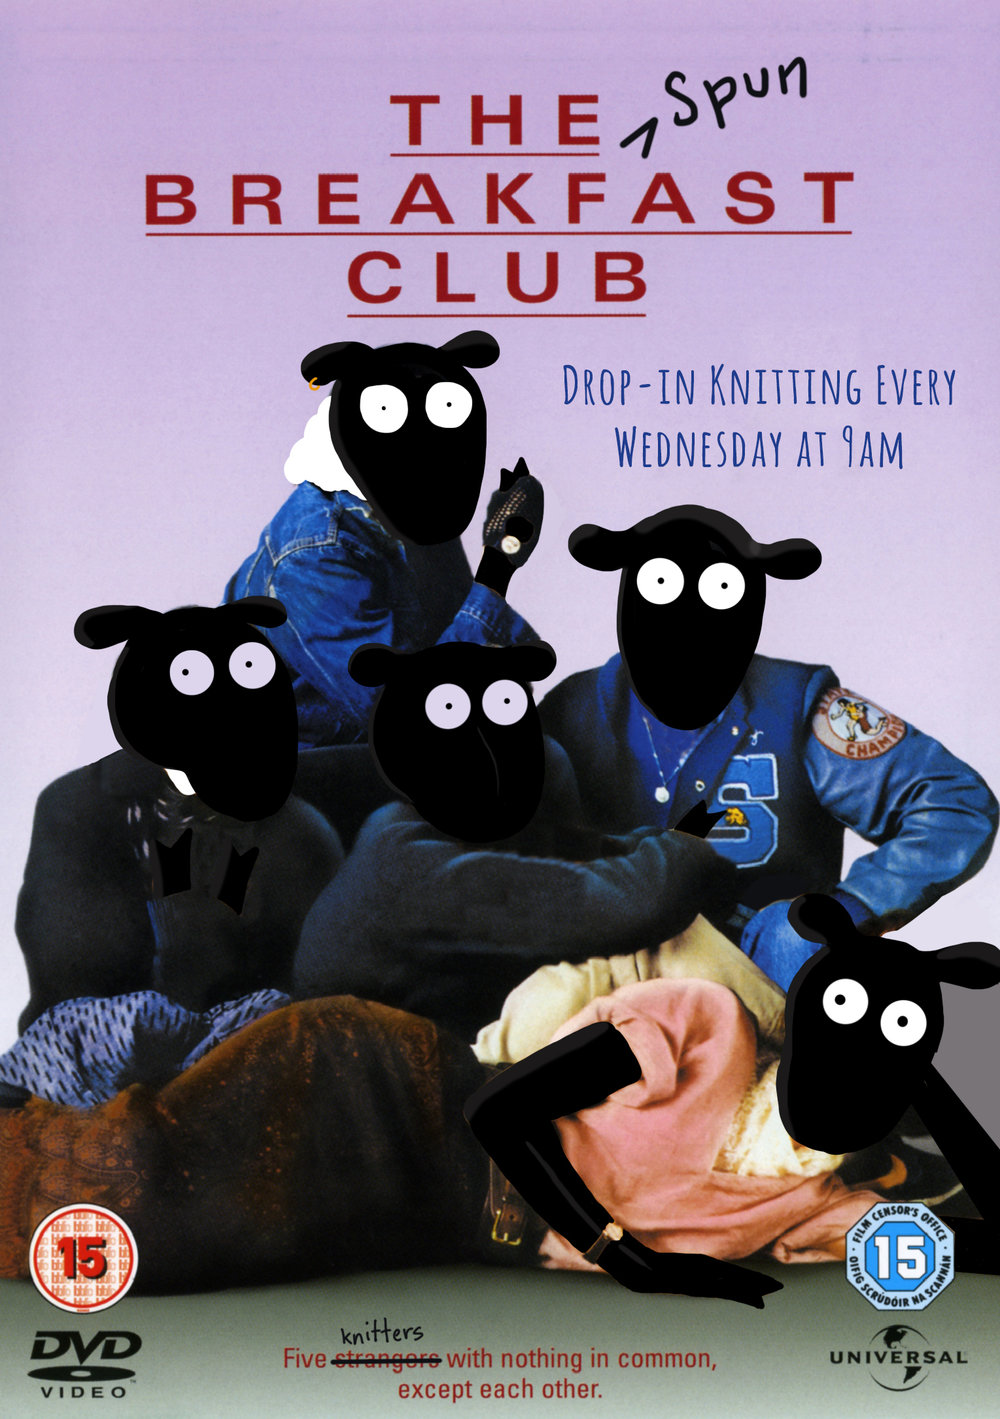 Spun Breakfast Club Poster 2.jpg